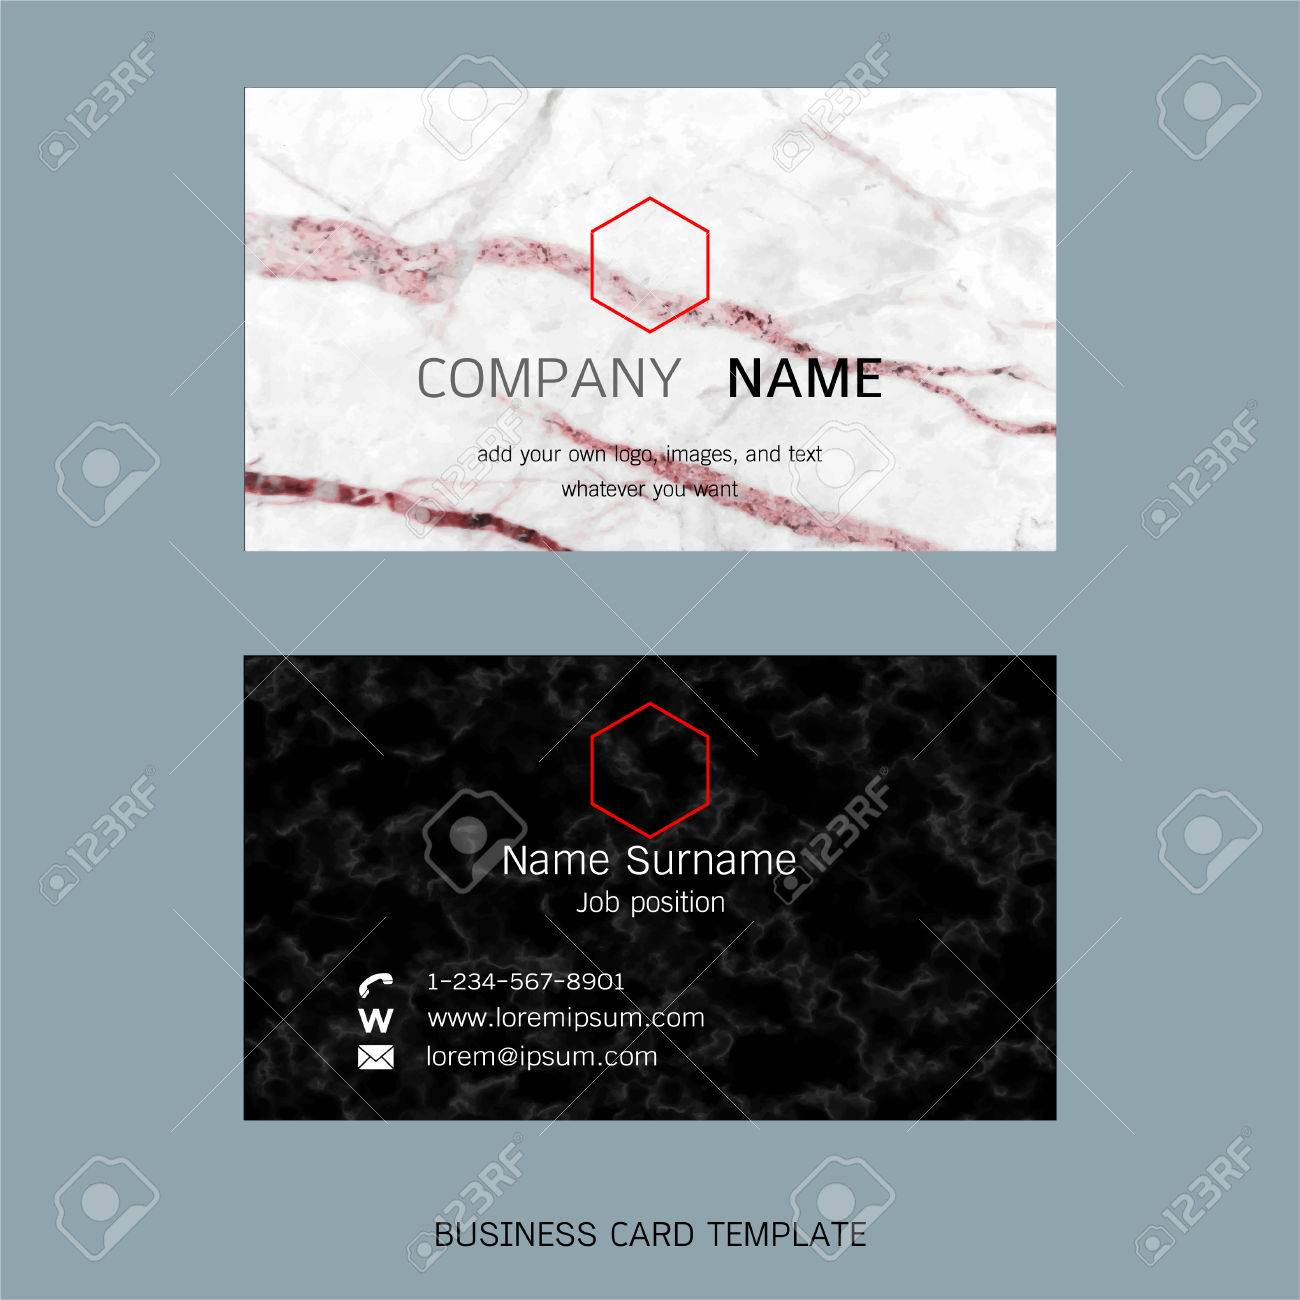 Modern designer business card layout templates marble texture modern designer business card layout templates marble texture background easy to use by print reheart